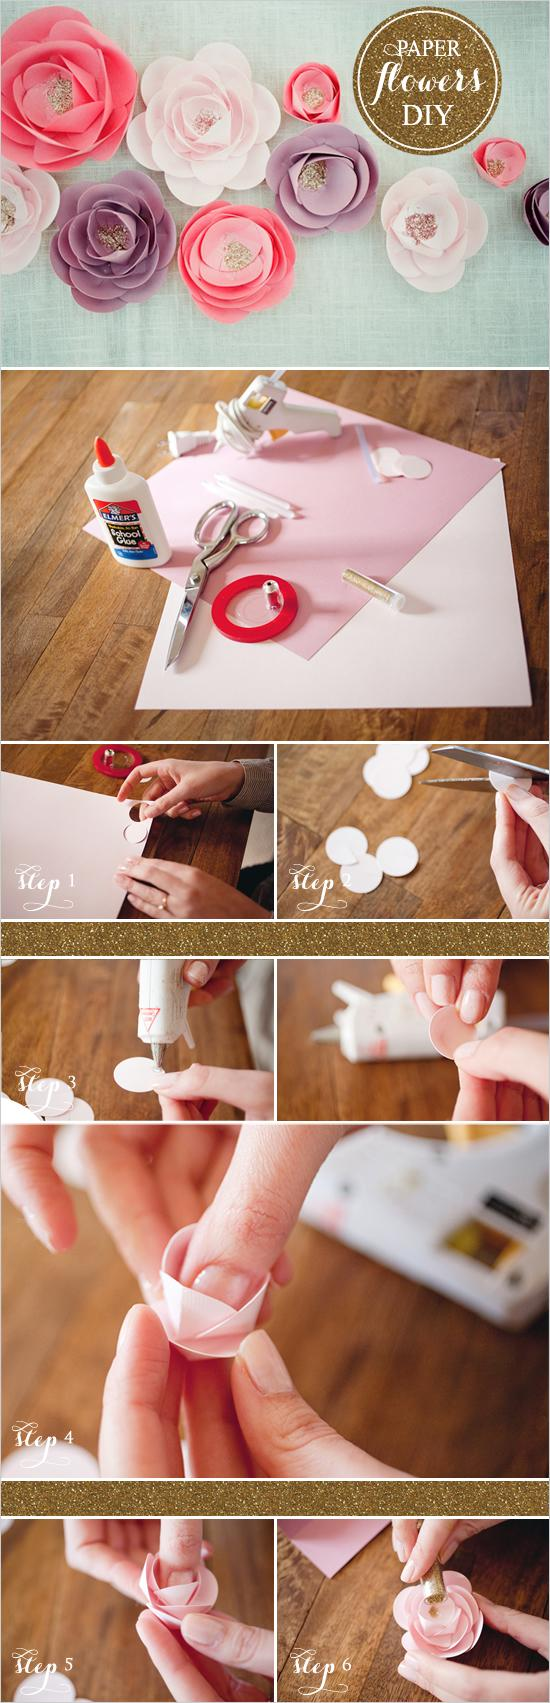 Diy paper flowers tutorials philly in love paper flowers 02 paper flowers diy wedding chicks solutioingenieria Image collections